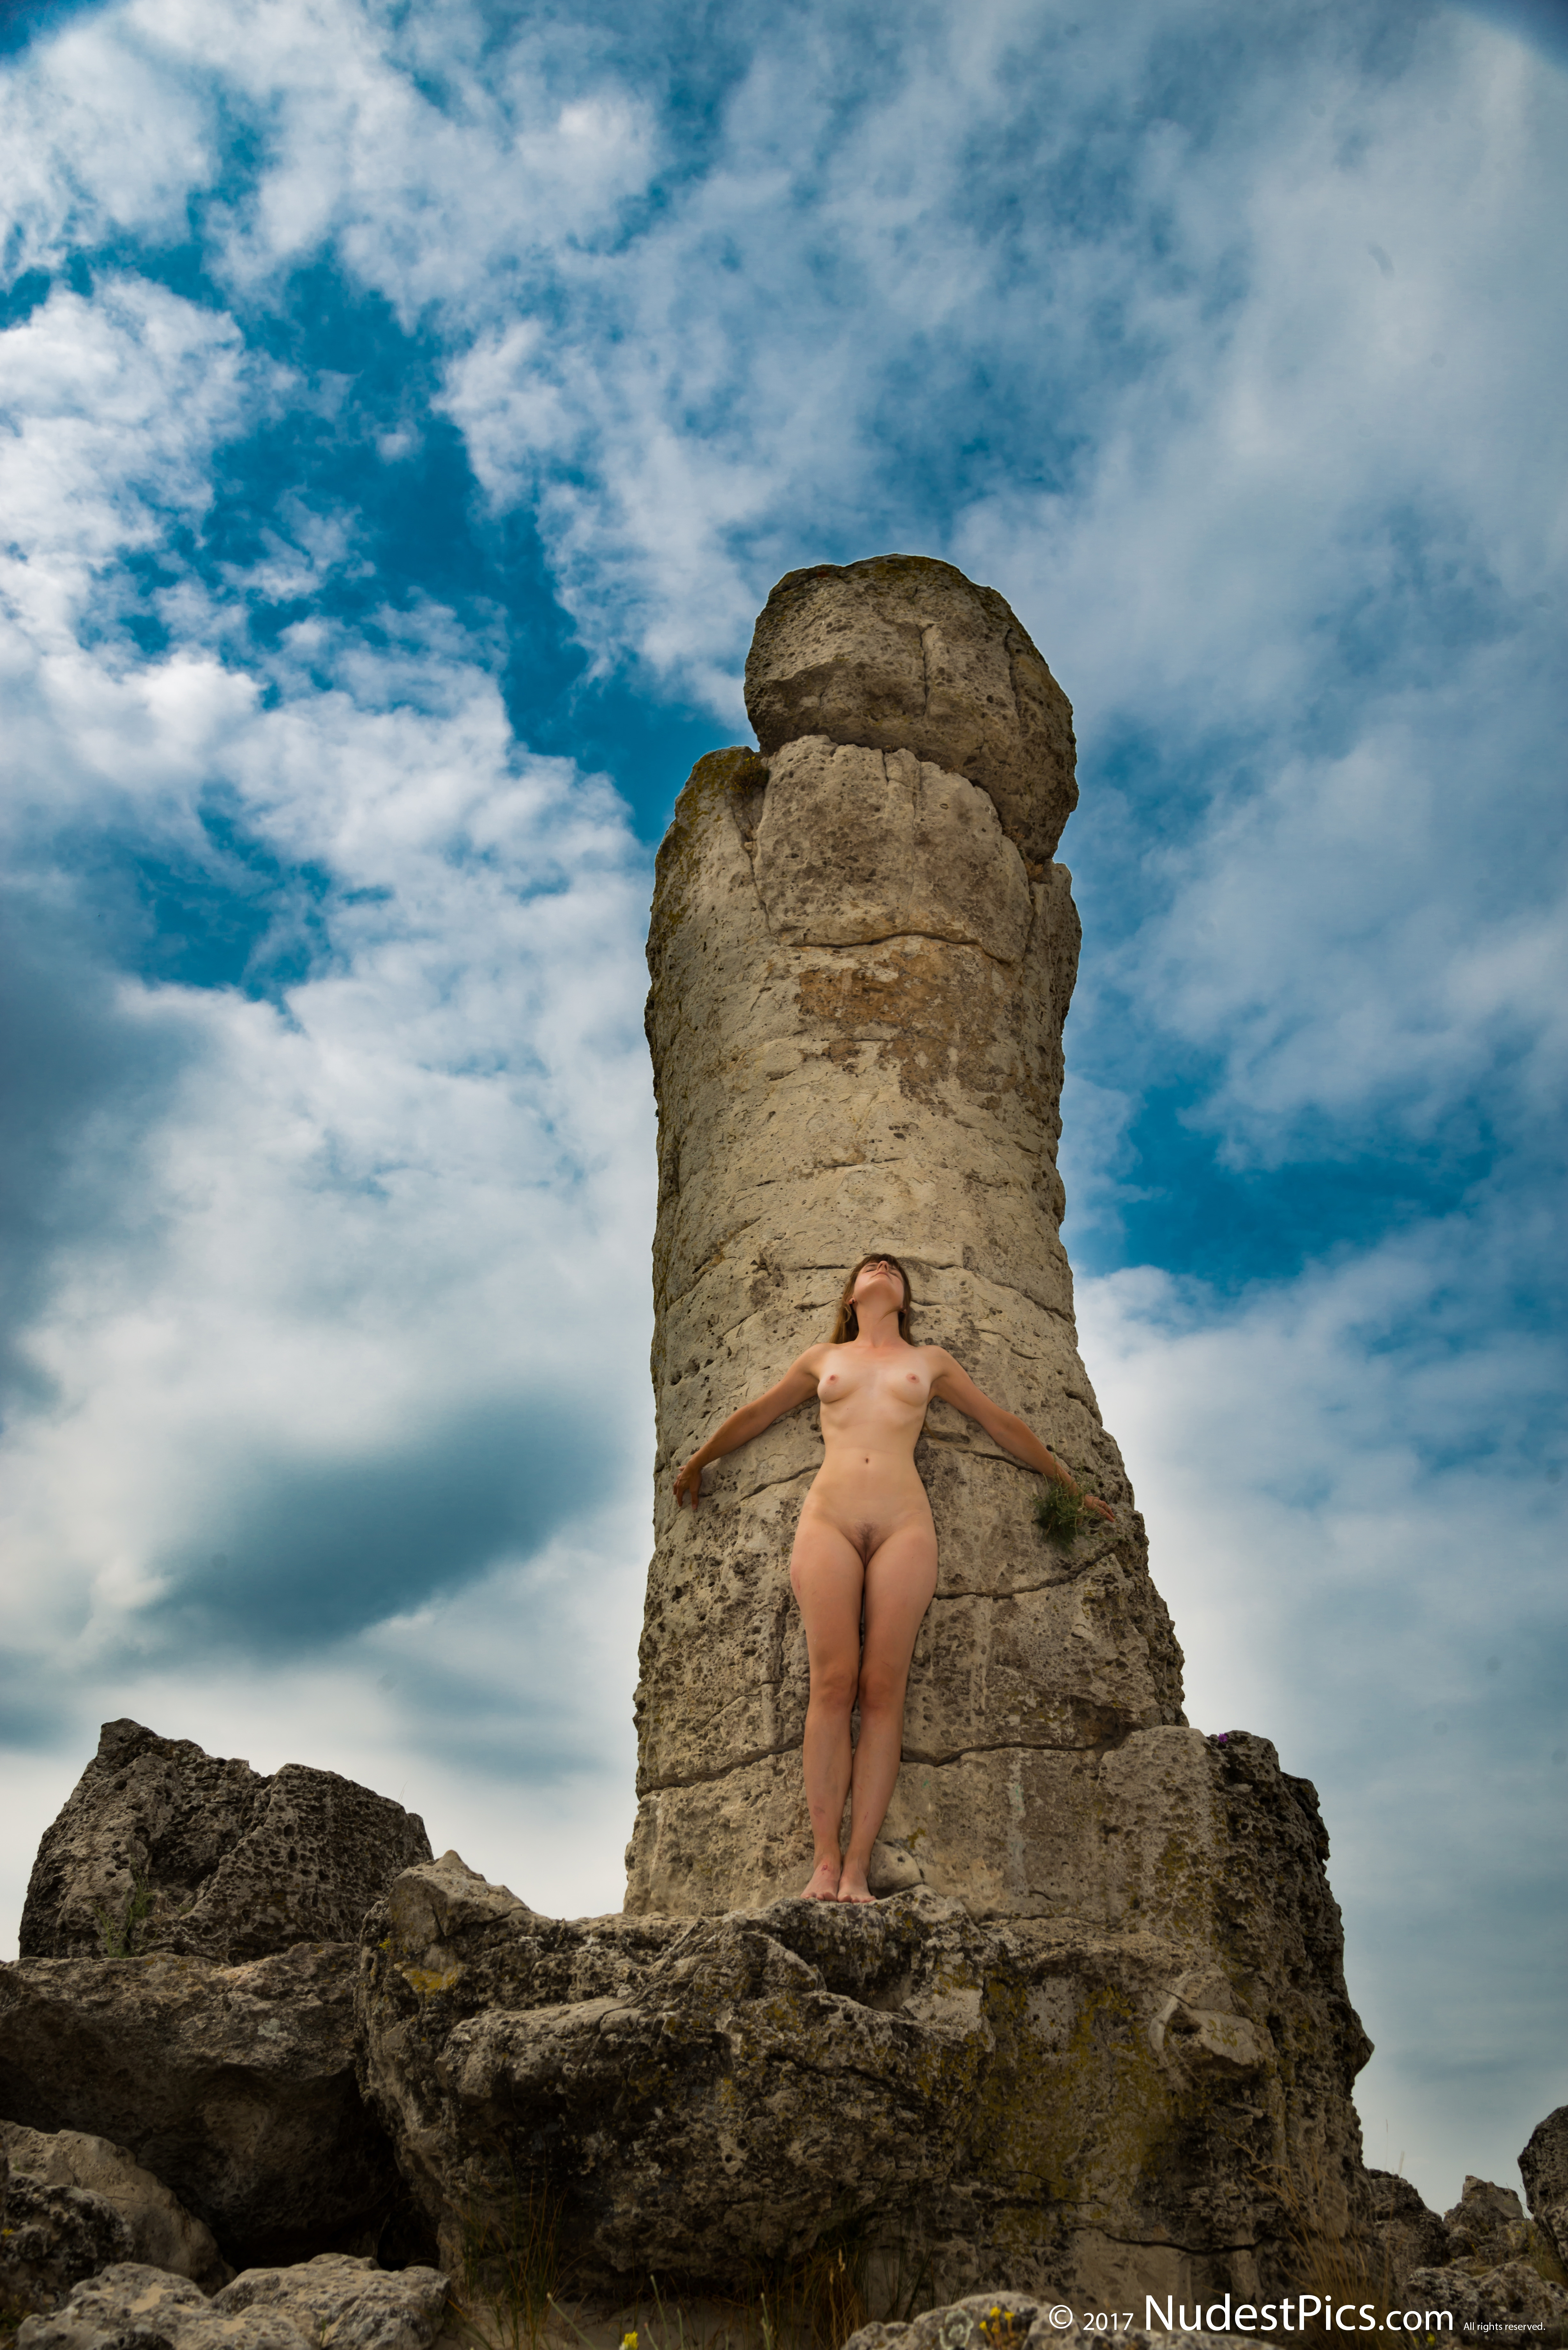 Nude Girl at the Stone Pole